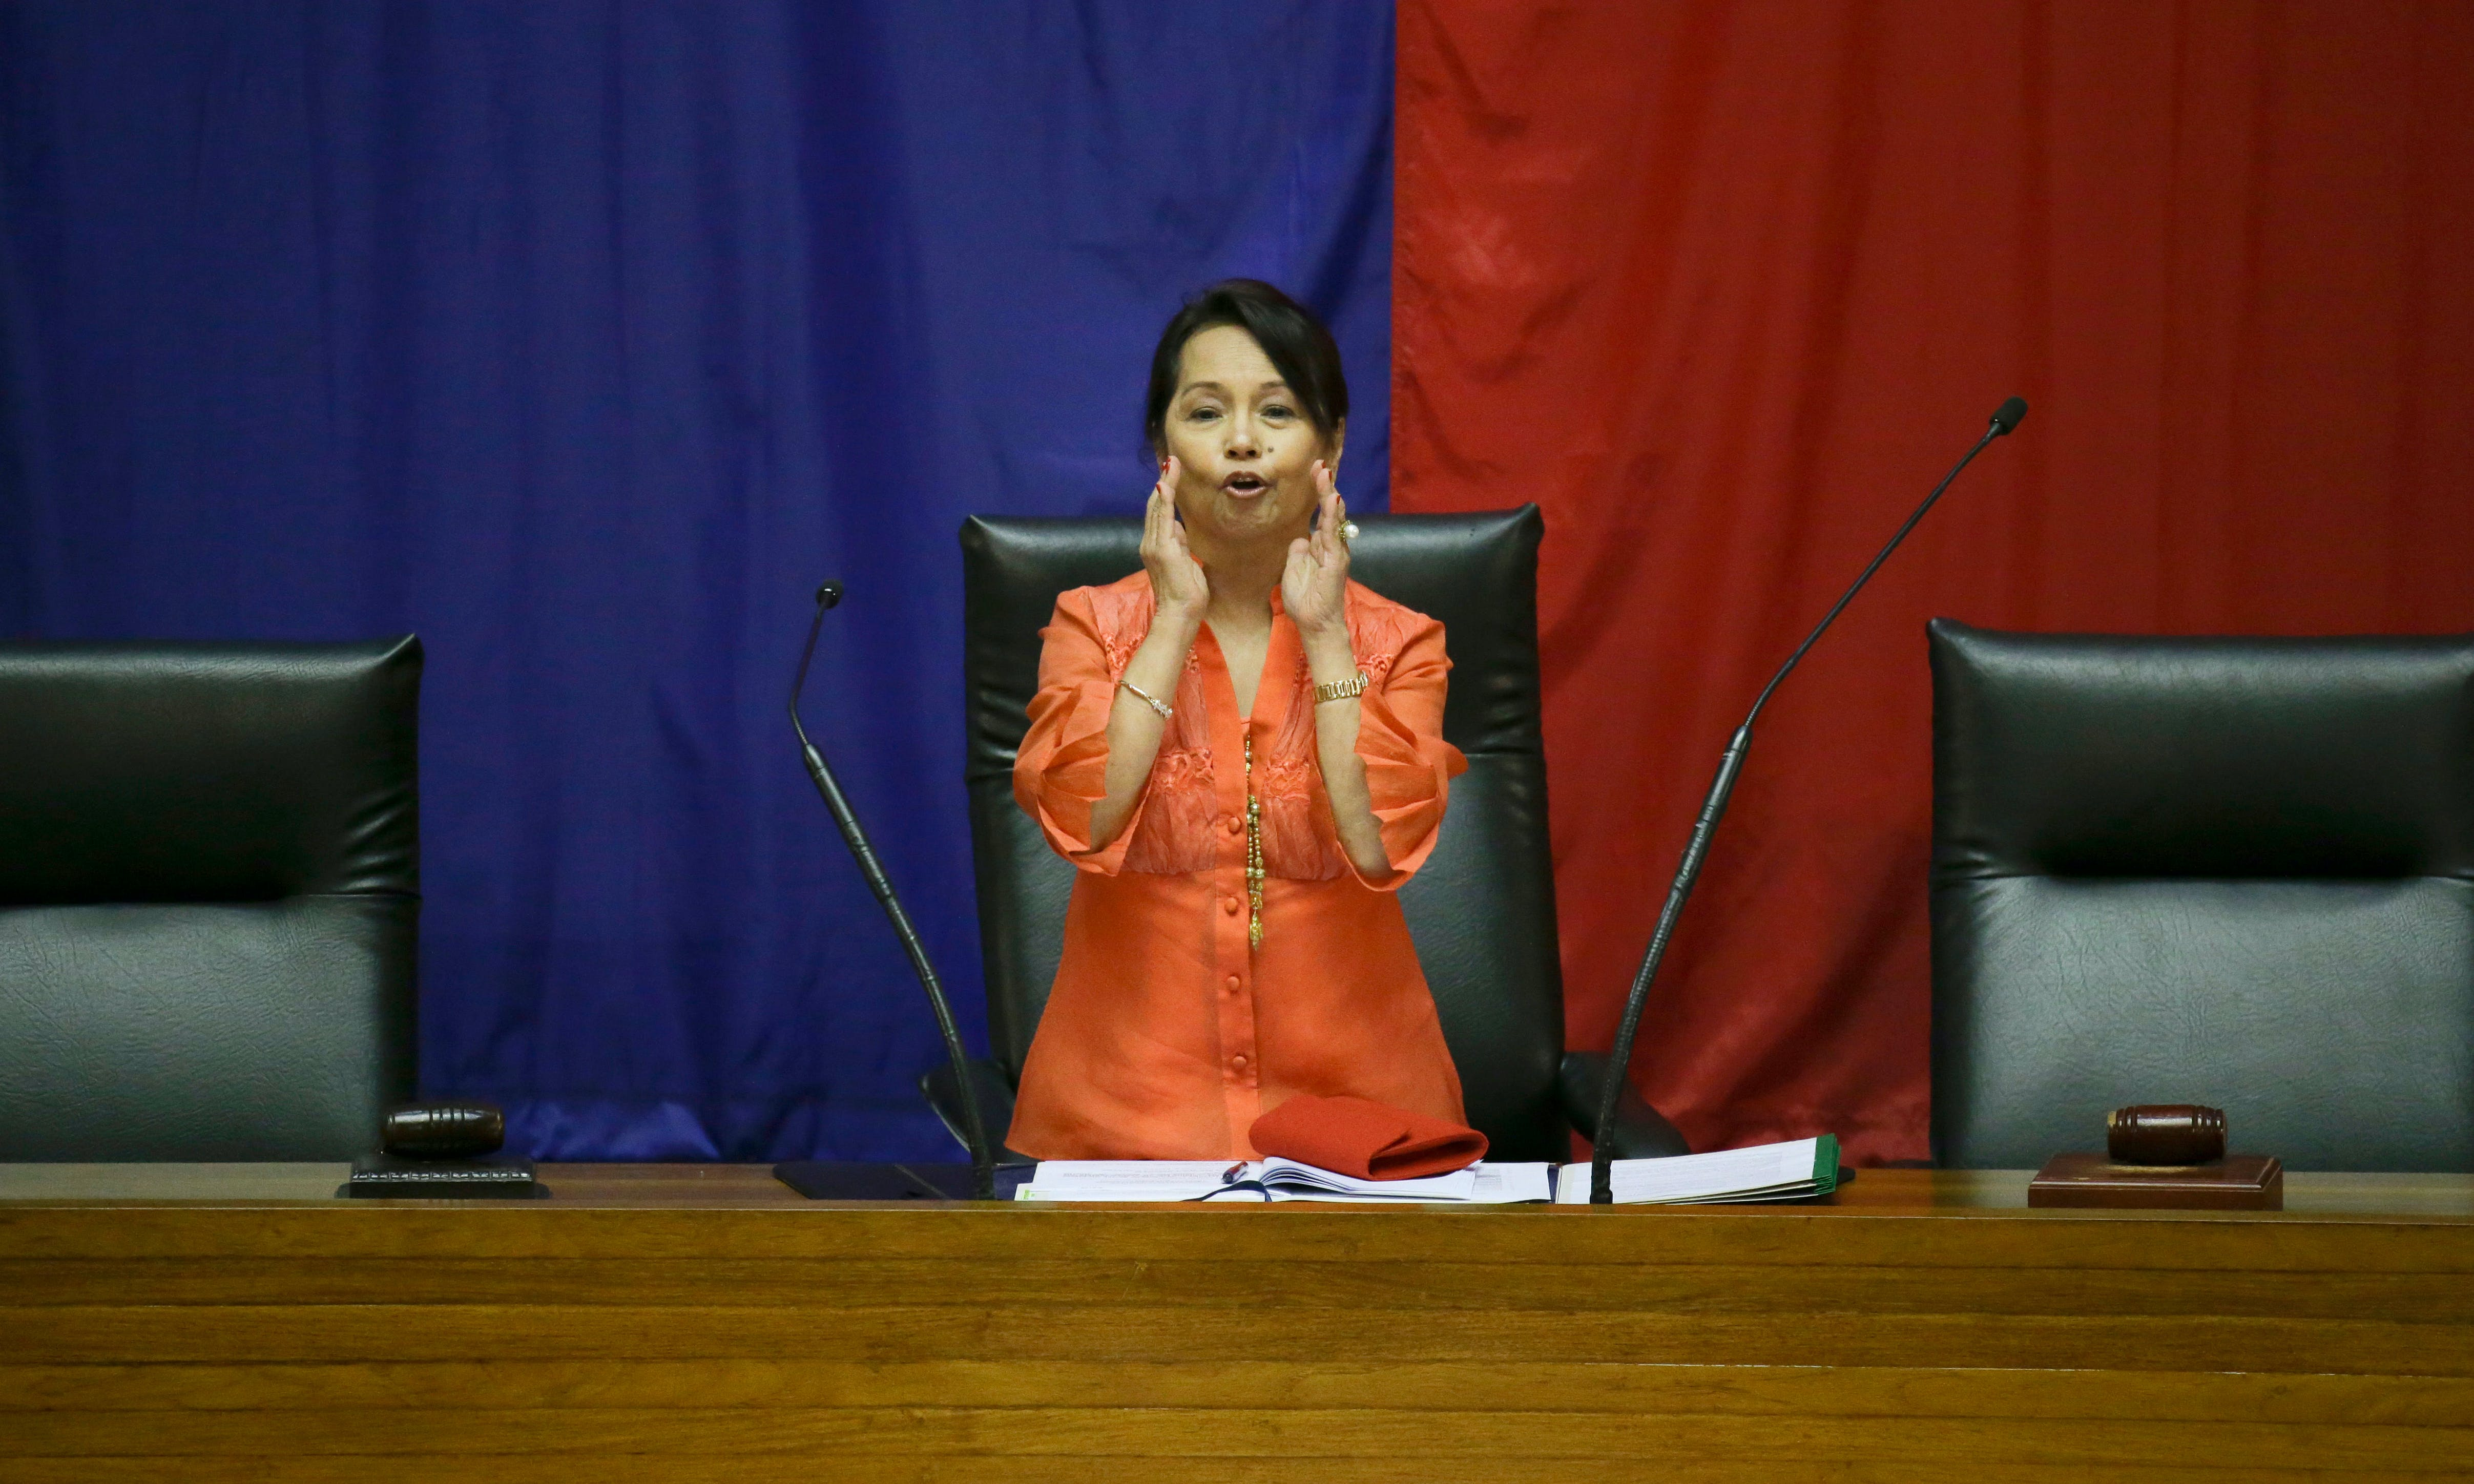 OPINION: Former President Gloria Arroyo Resurrects to Inflict More Terror